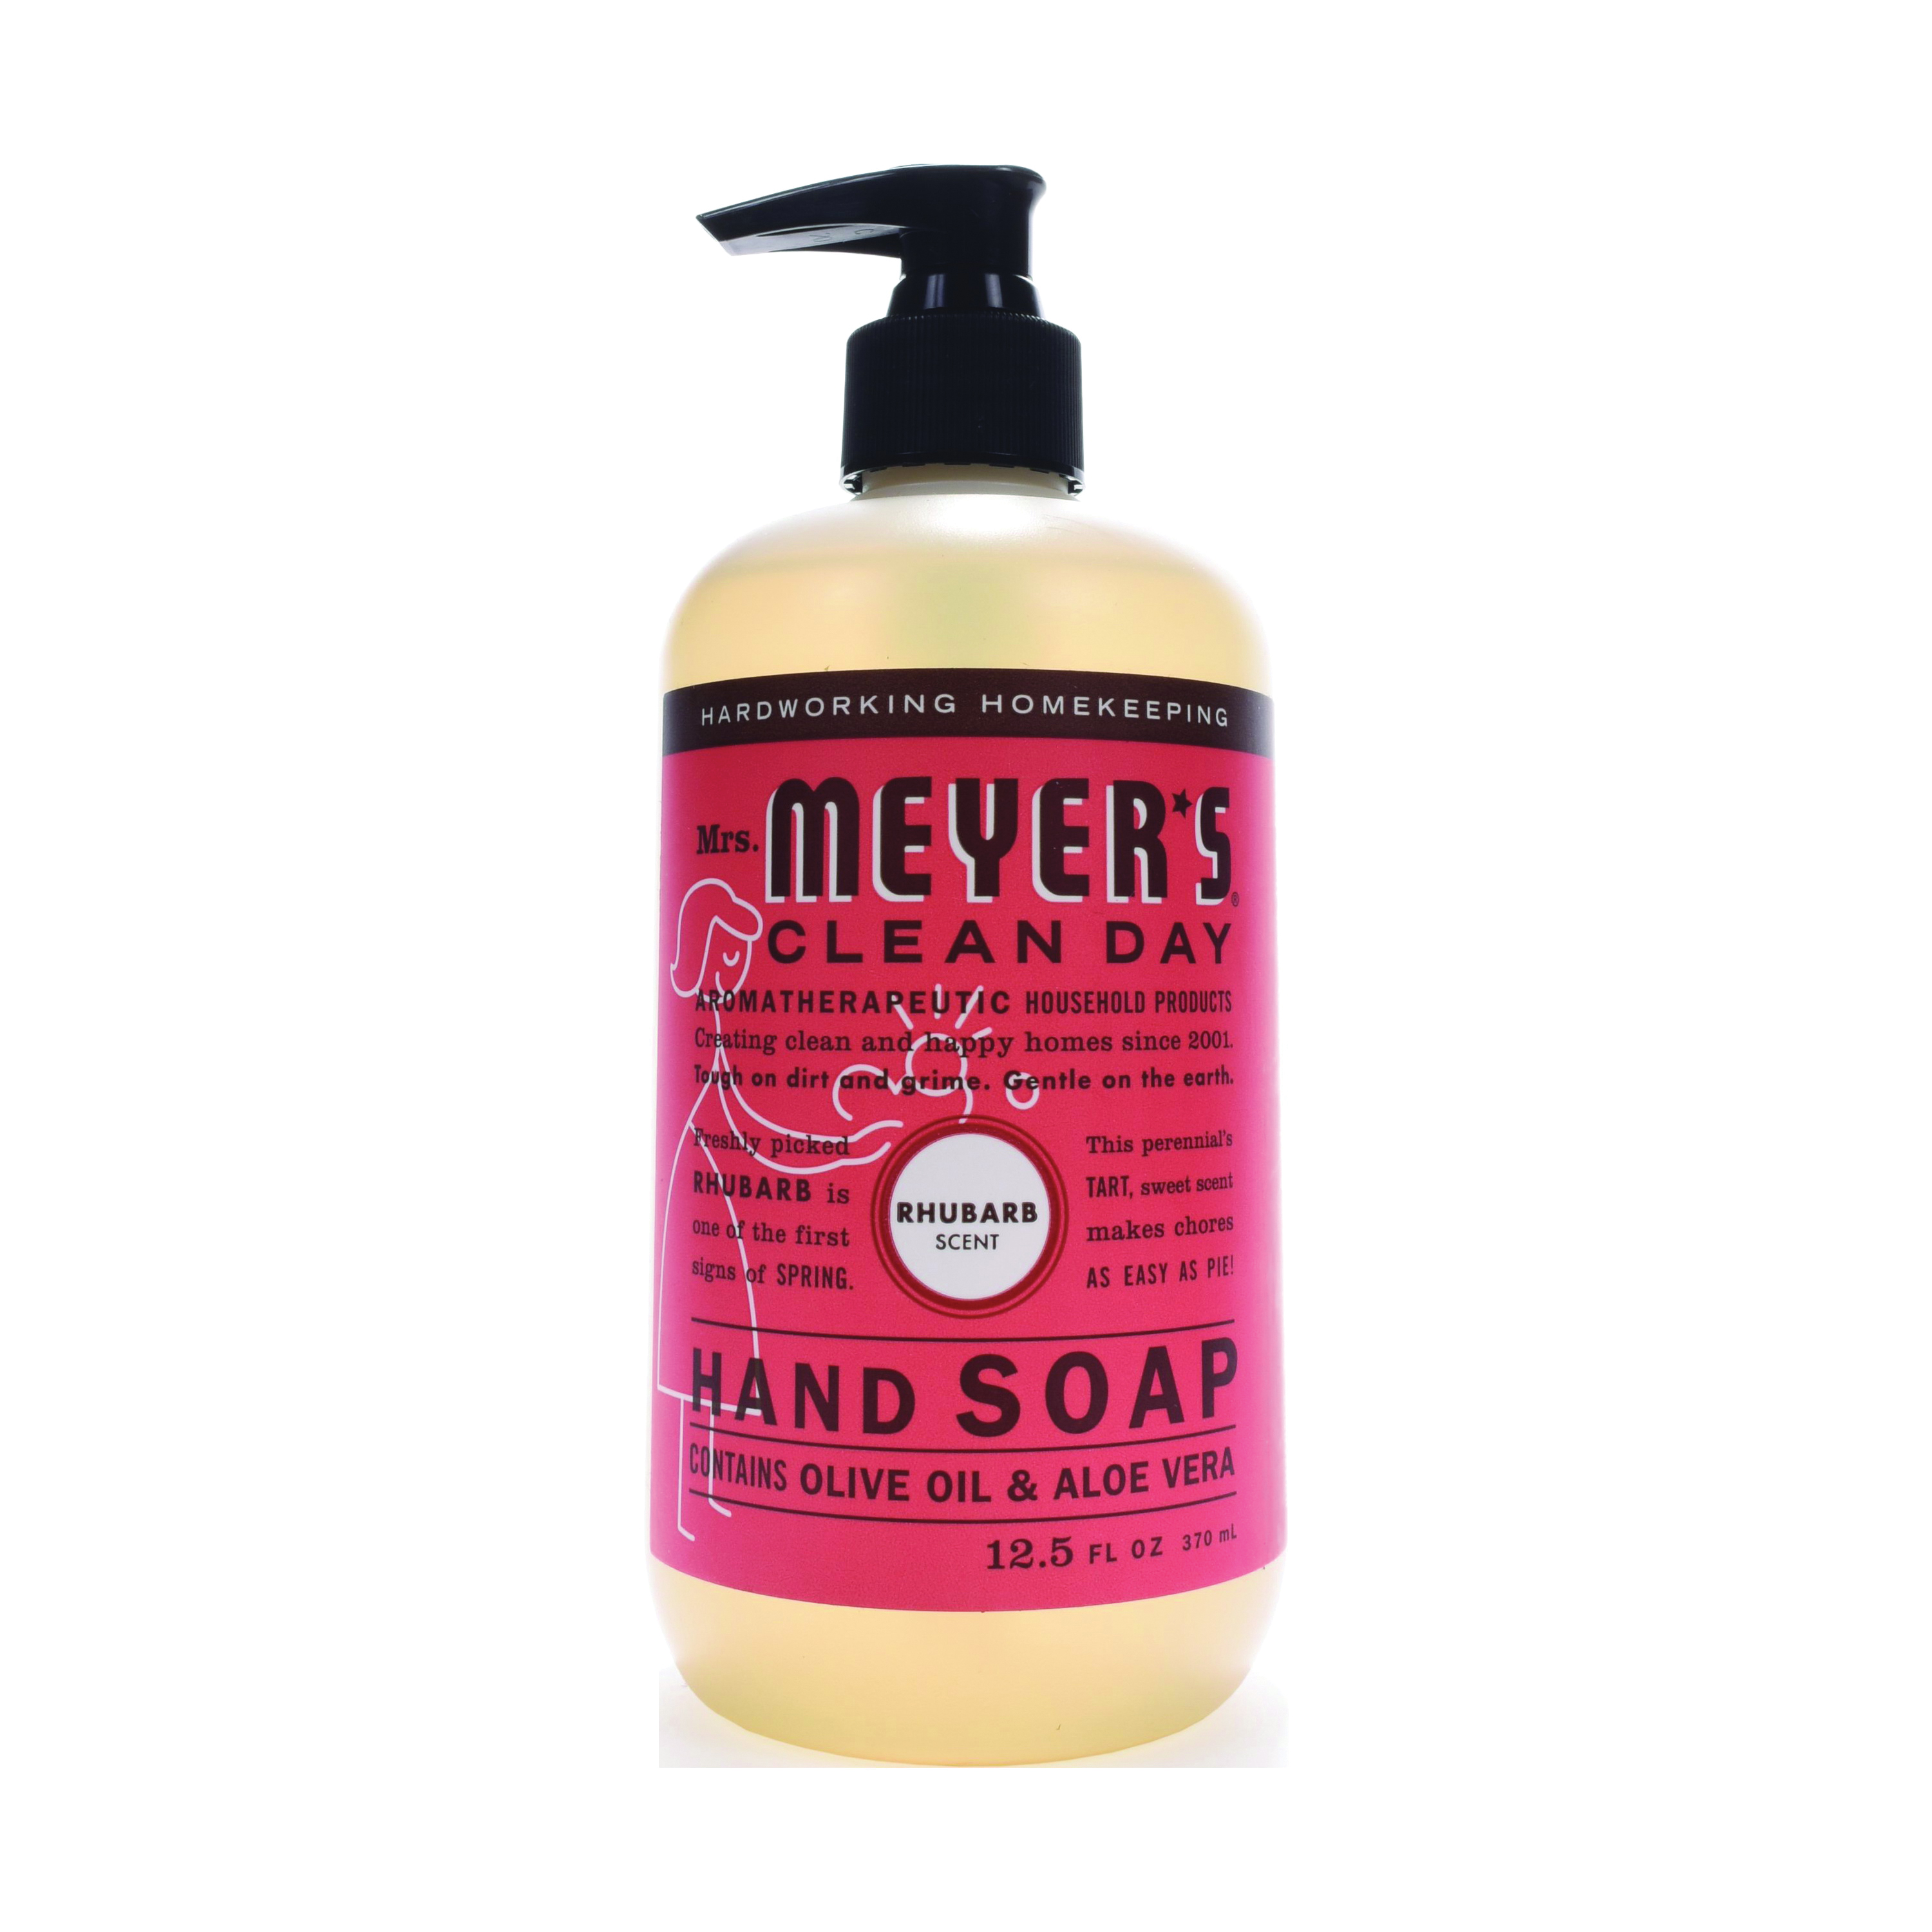 Picture of Mrs. Meyer's 17462 Hand Soap, Liquid, Rhubarb, 12.5 oz Package, Bottle